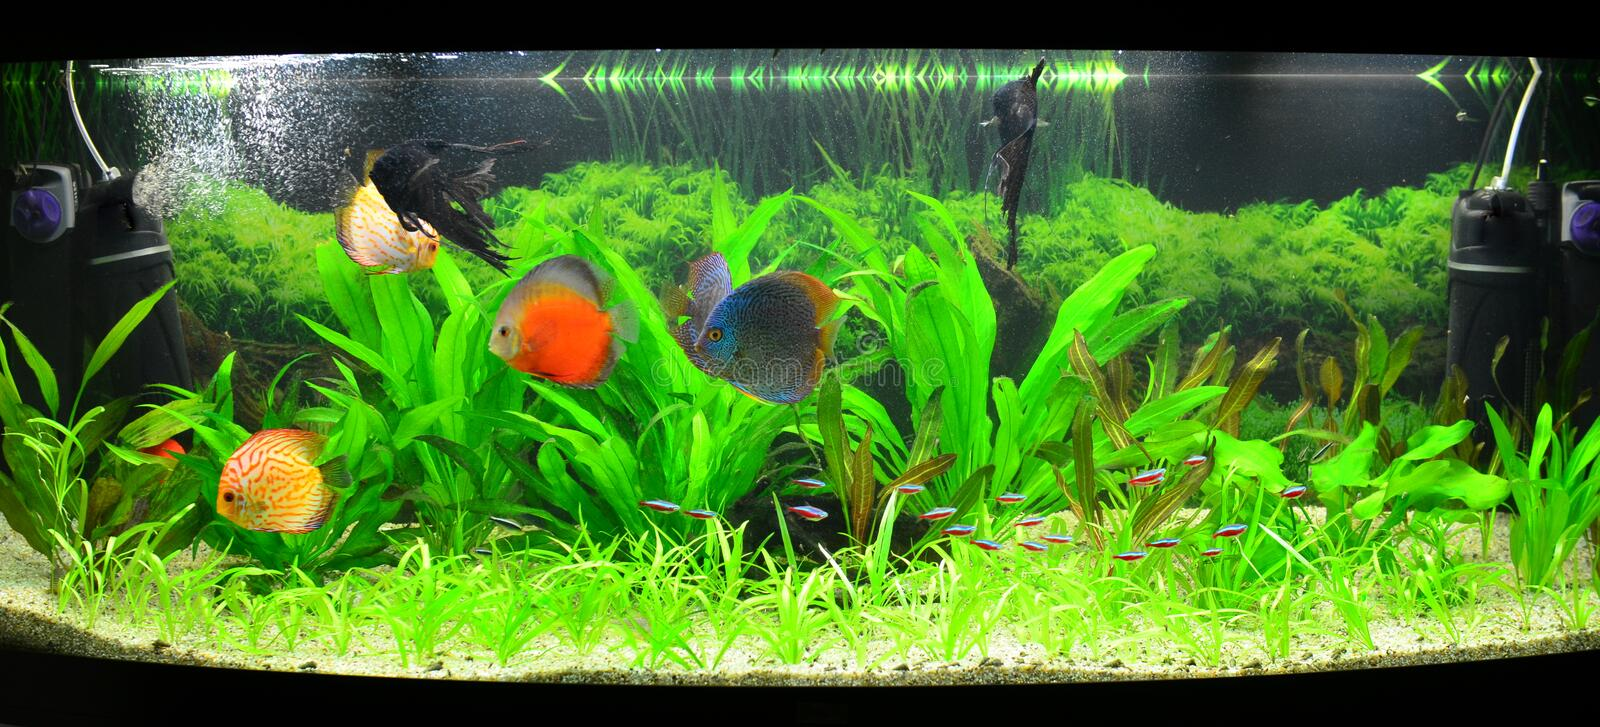 Home aquarium with discus fish and plants stock photo Beautiful aquariums for home